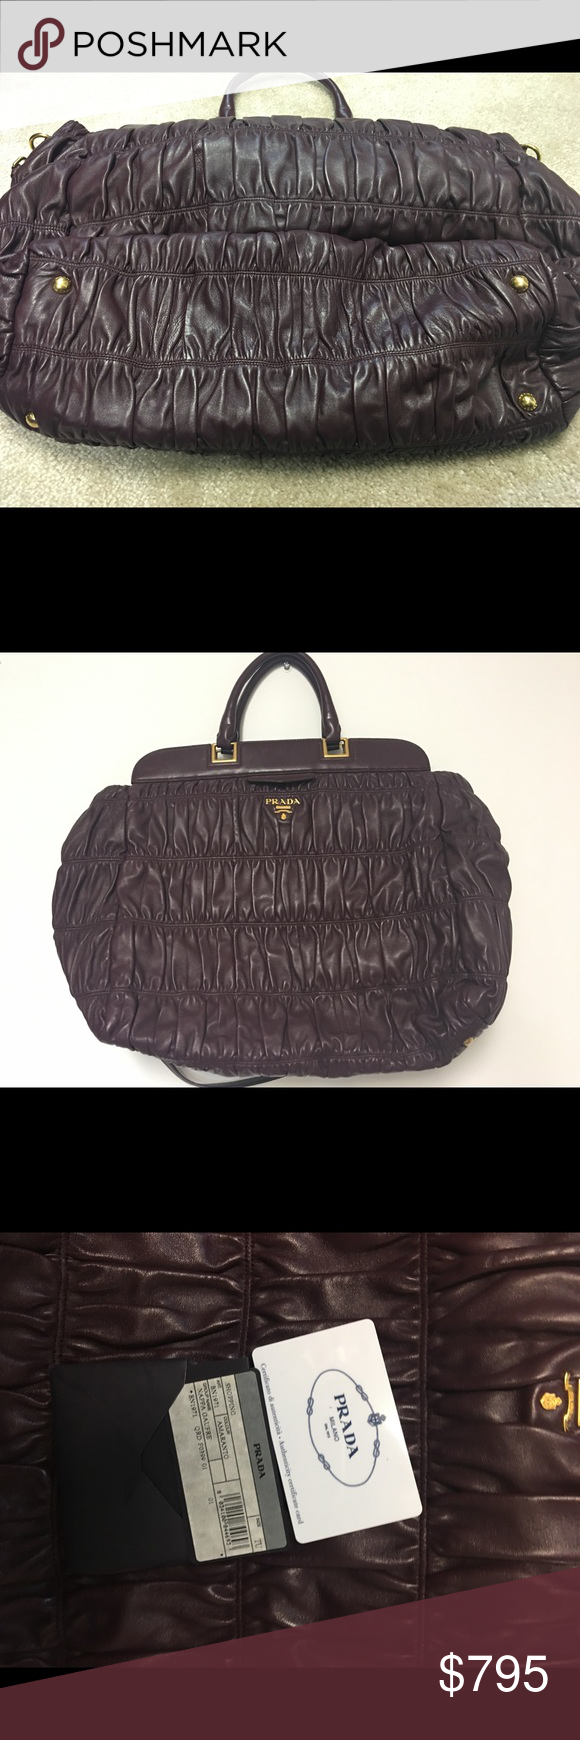 81a965d7577a Authentic Prada Nappa Gaufre Leather Satchel Like New Condition - worn 2x.  Clean interior! Spacious bag can be worn cross body.